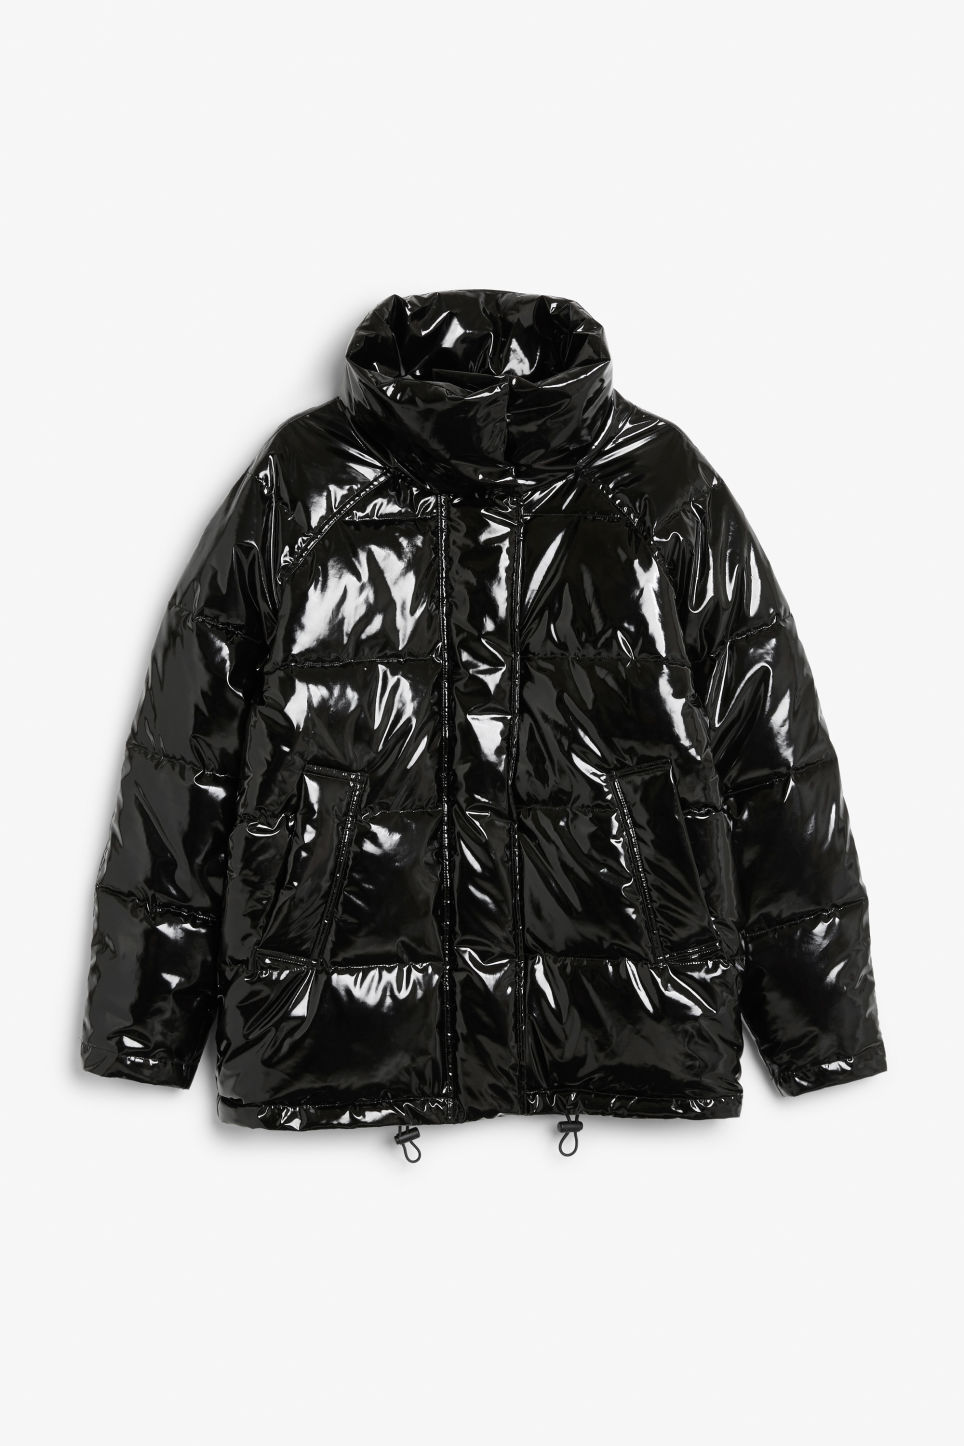 Puffer Jacket in Black Magic from MONKI, £30 (was £66)